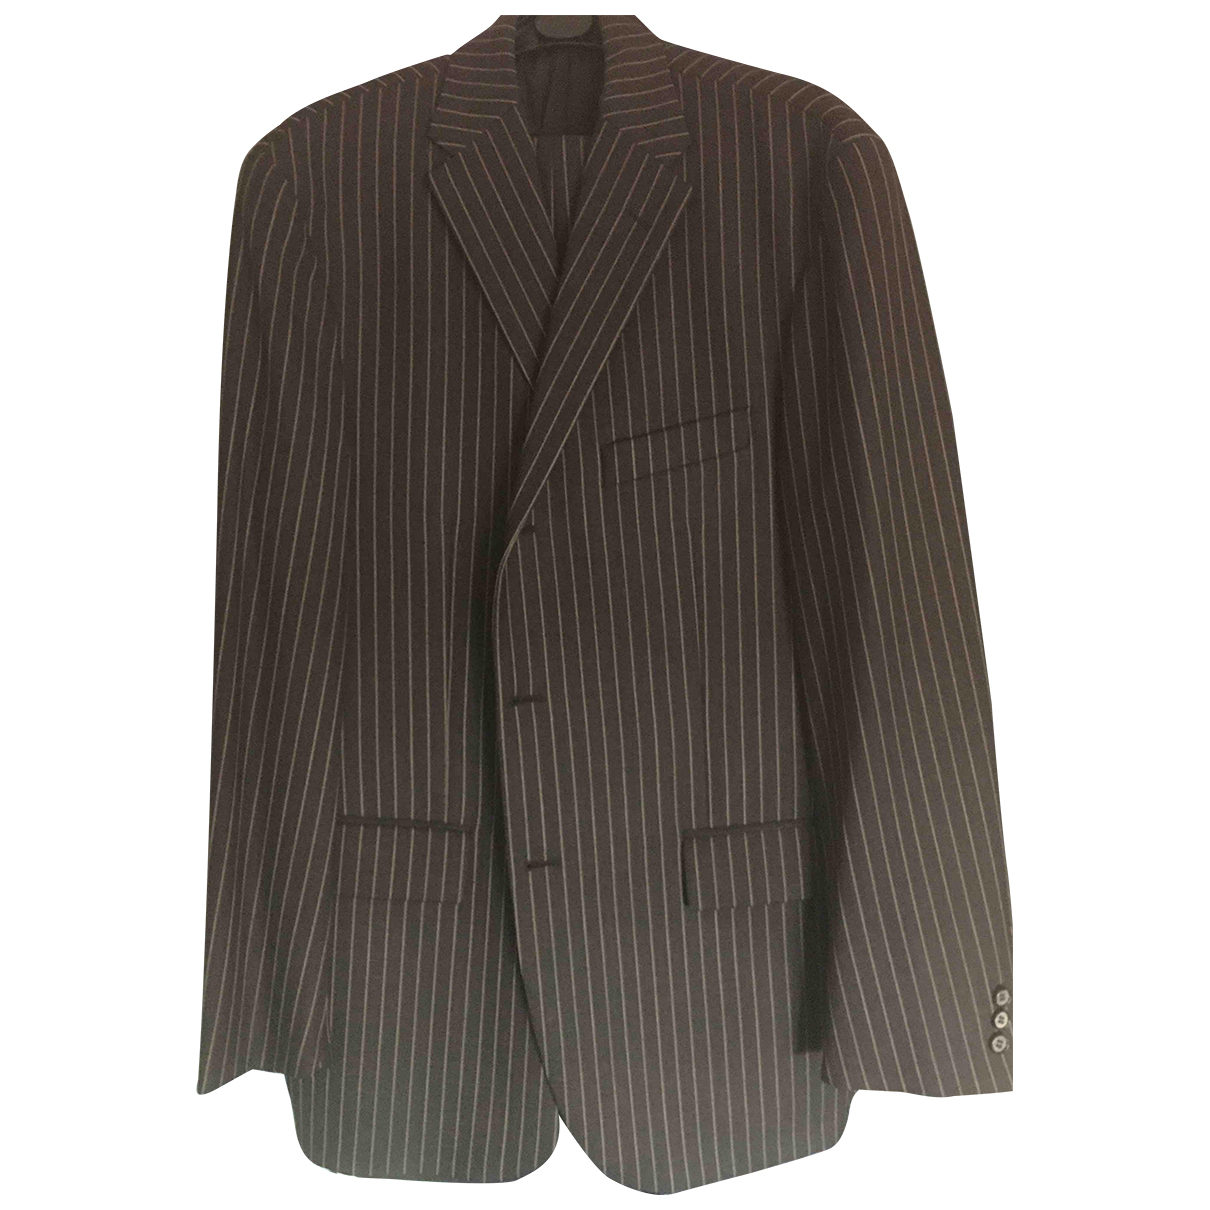 Corneliani N Anthracite Wool Suits for Men 52 IT